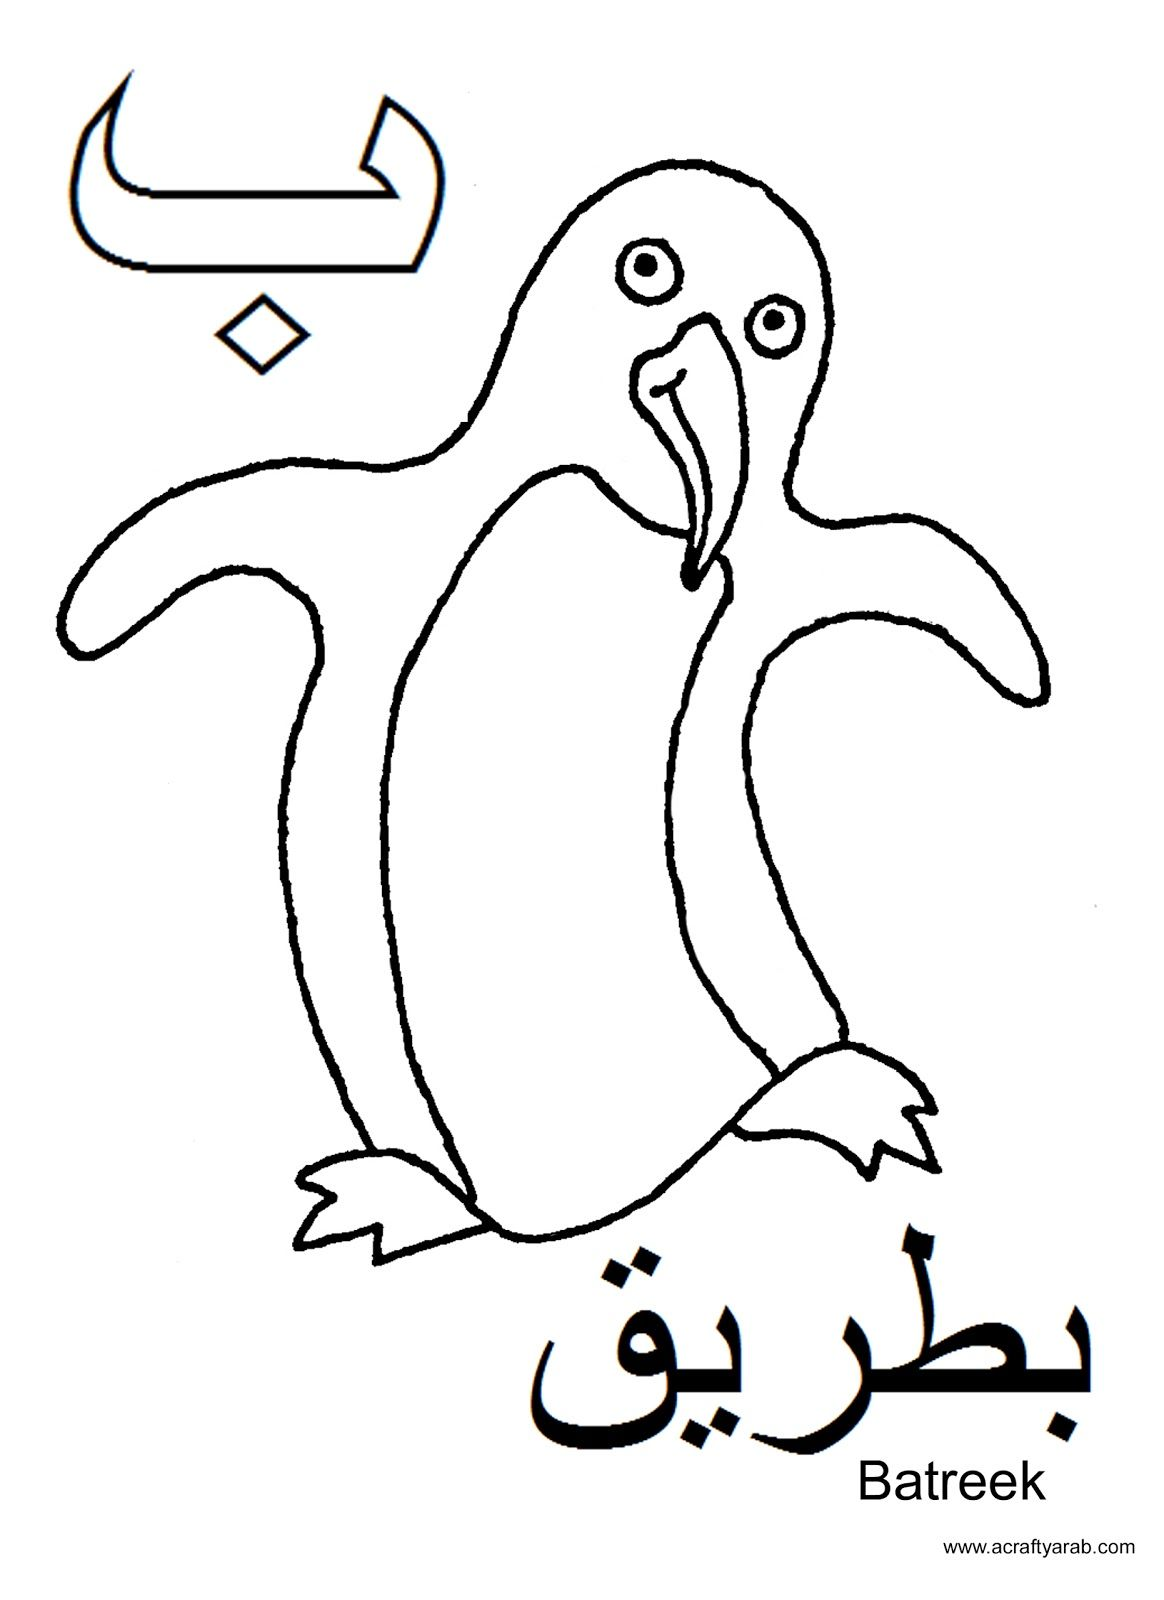 I'm still continuing to take the animals from my Arabic